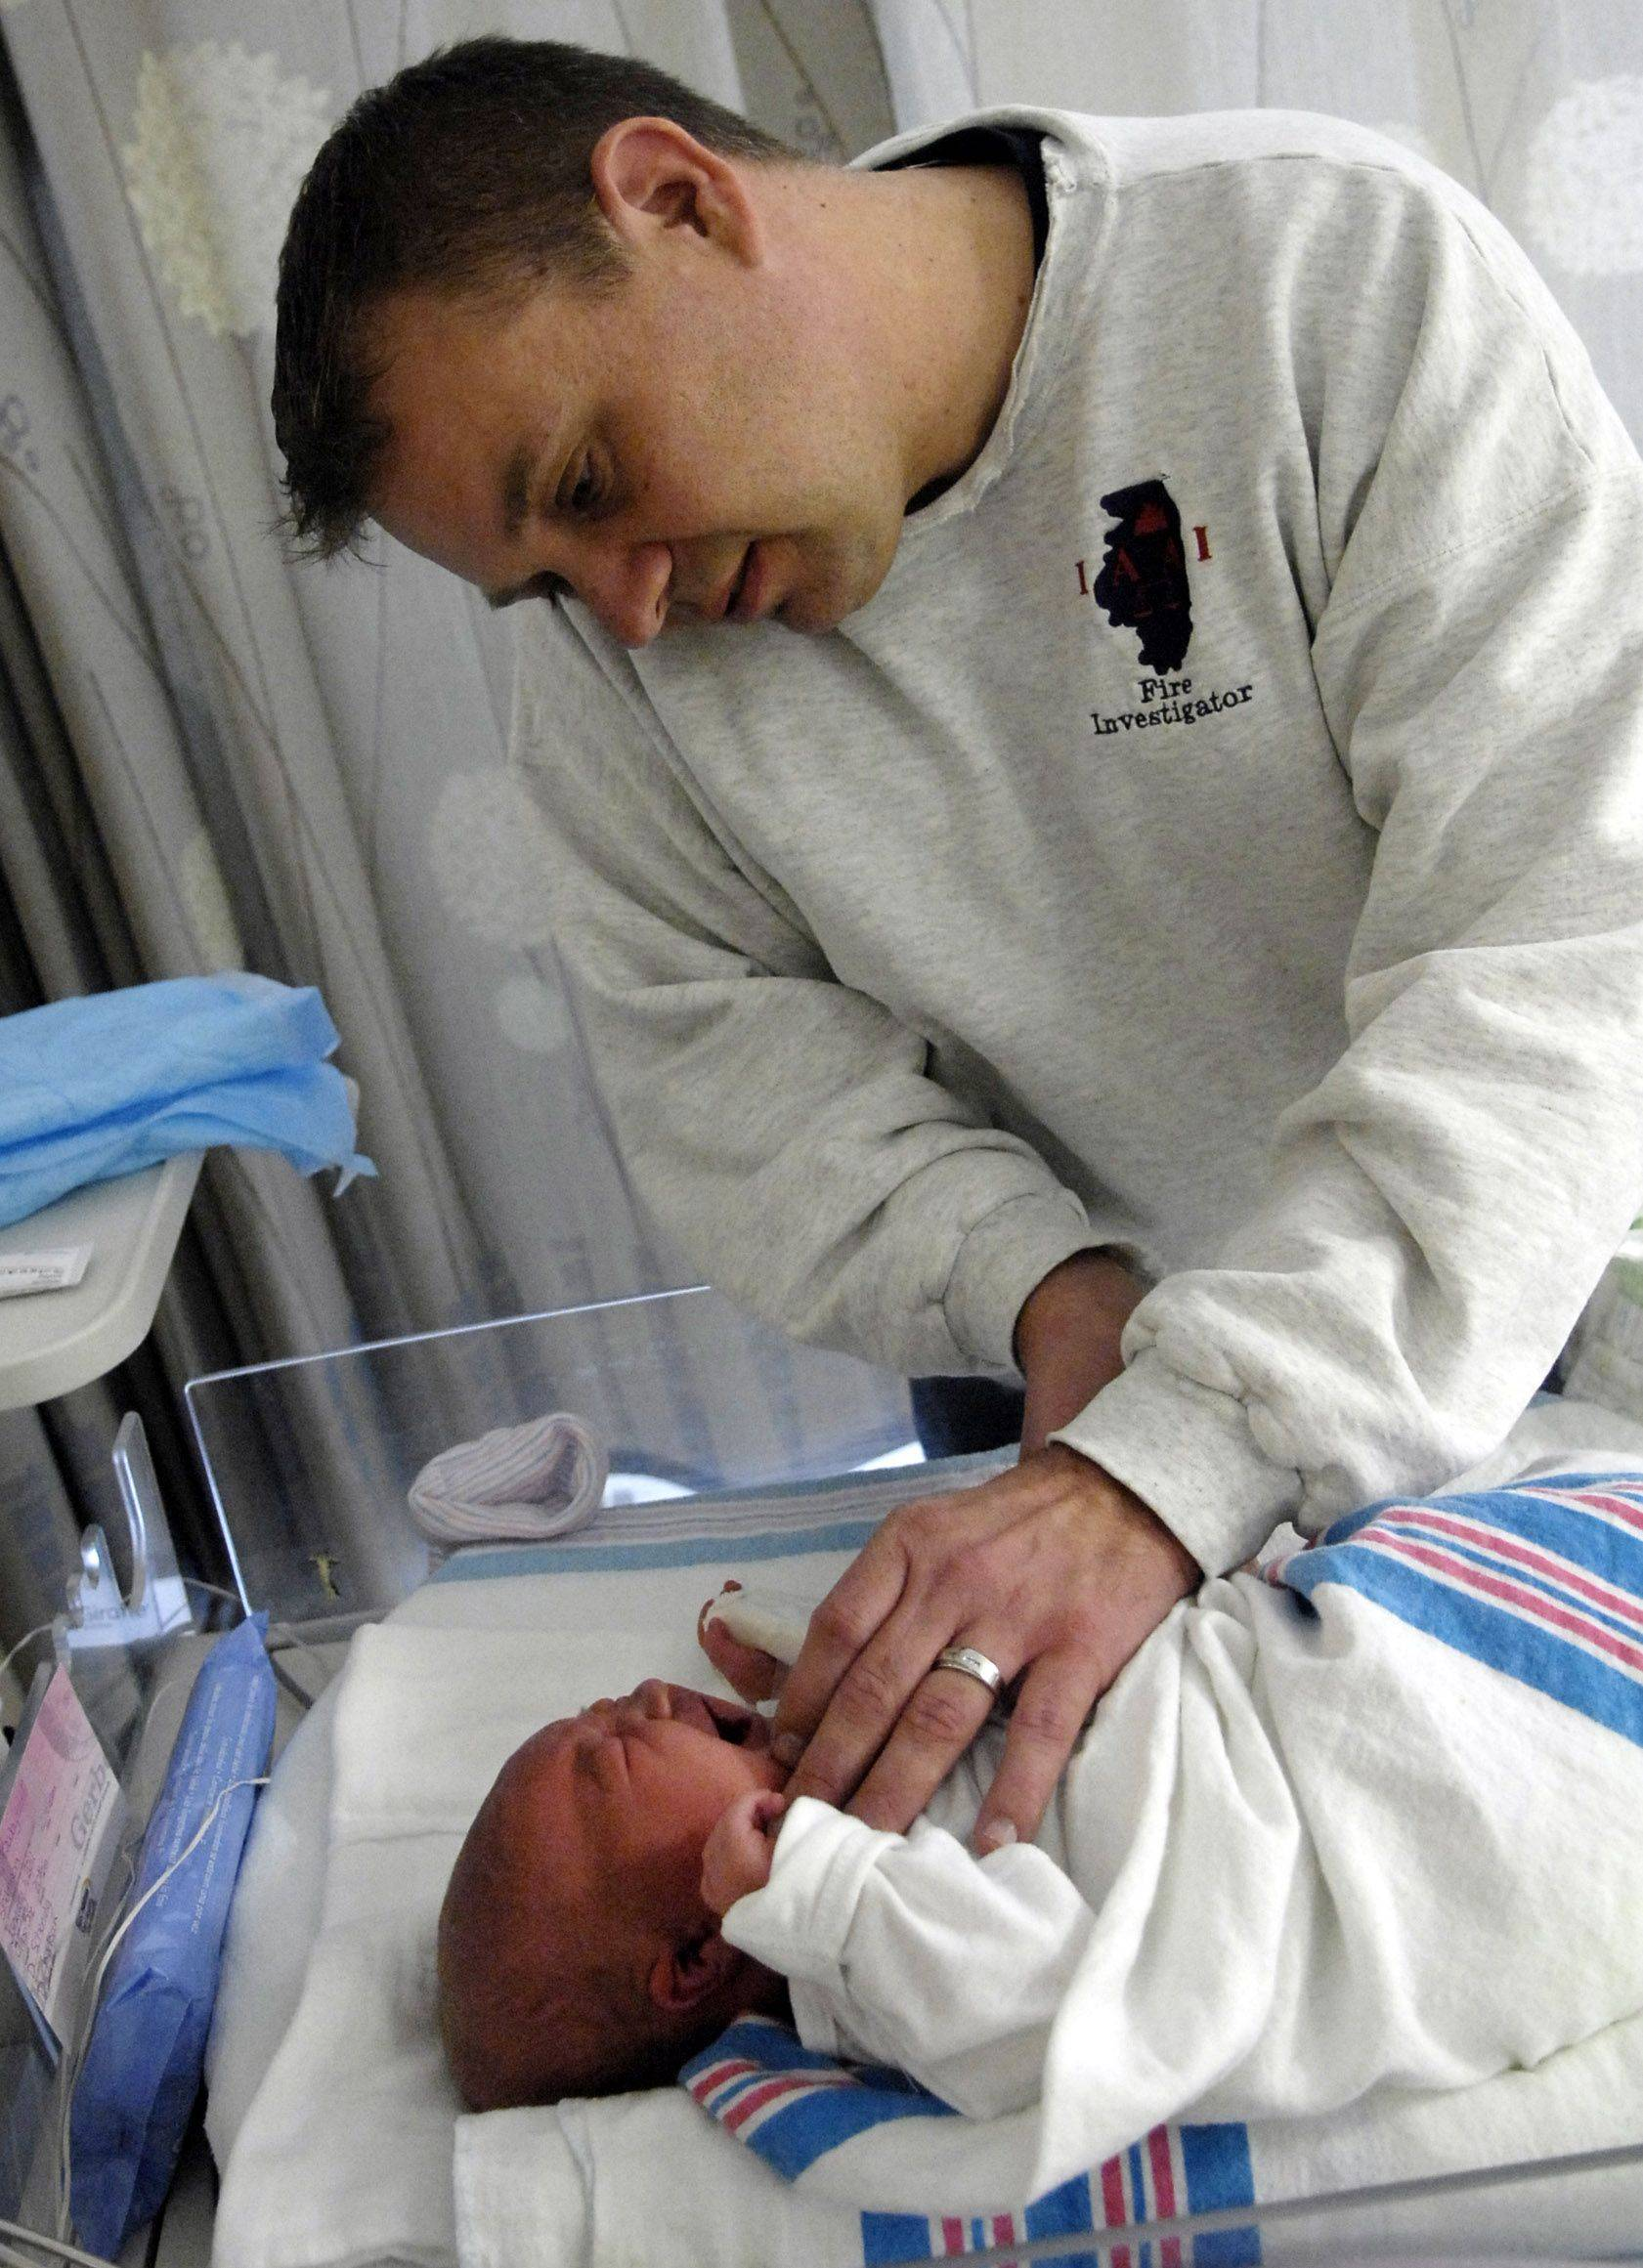 Paul Ross tries to soothe his newborn daughter Caitlin Joya Ross Saturday in the NICU unit at Sherman Hospital in Elgin. Caitlin was the first baby born in Kane County in 2011, emerging at 12:45 a.m. and weighing in at 9 pounds 3 ounces for Paul and mom Shannon.